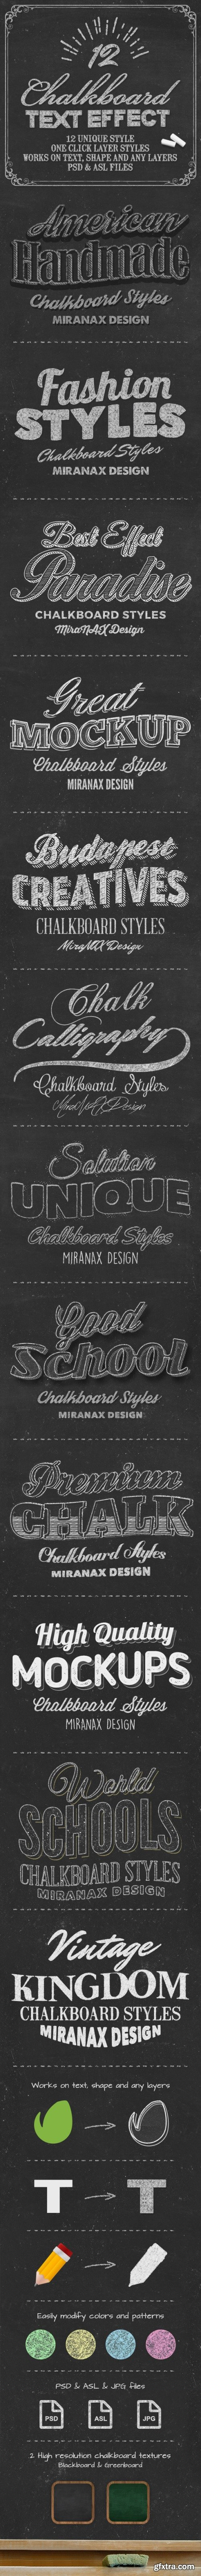 Graphicriver - Chalkboard Styles 10785351